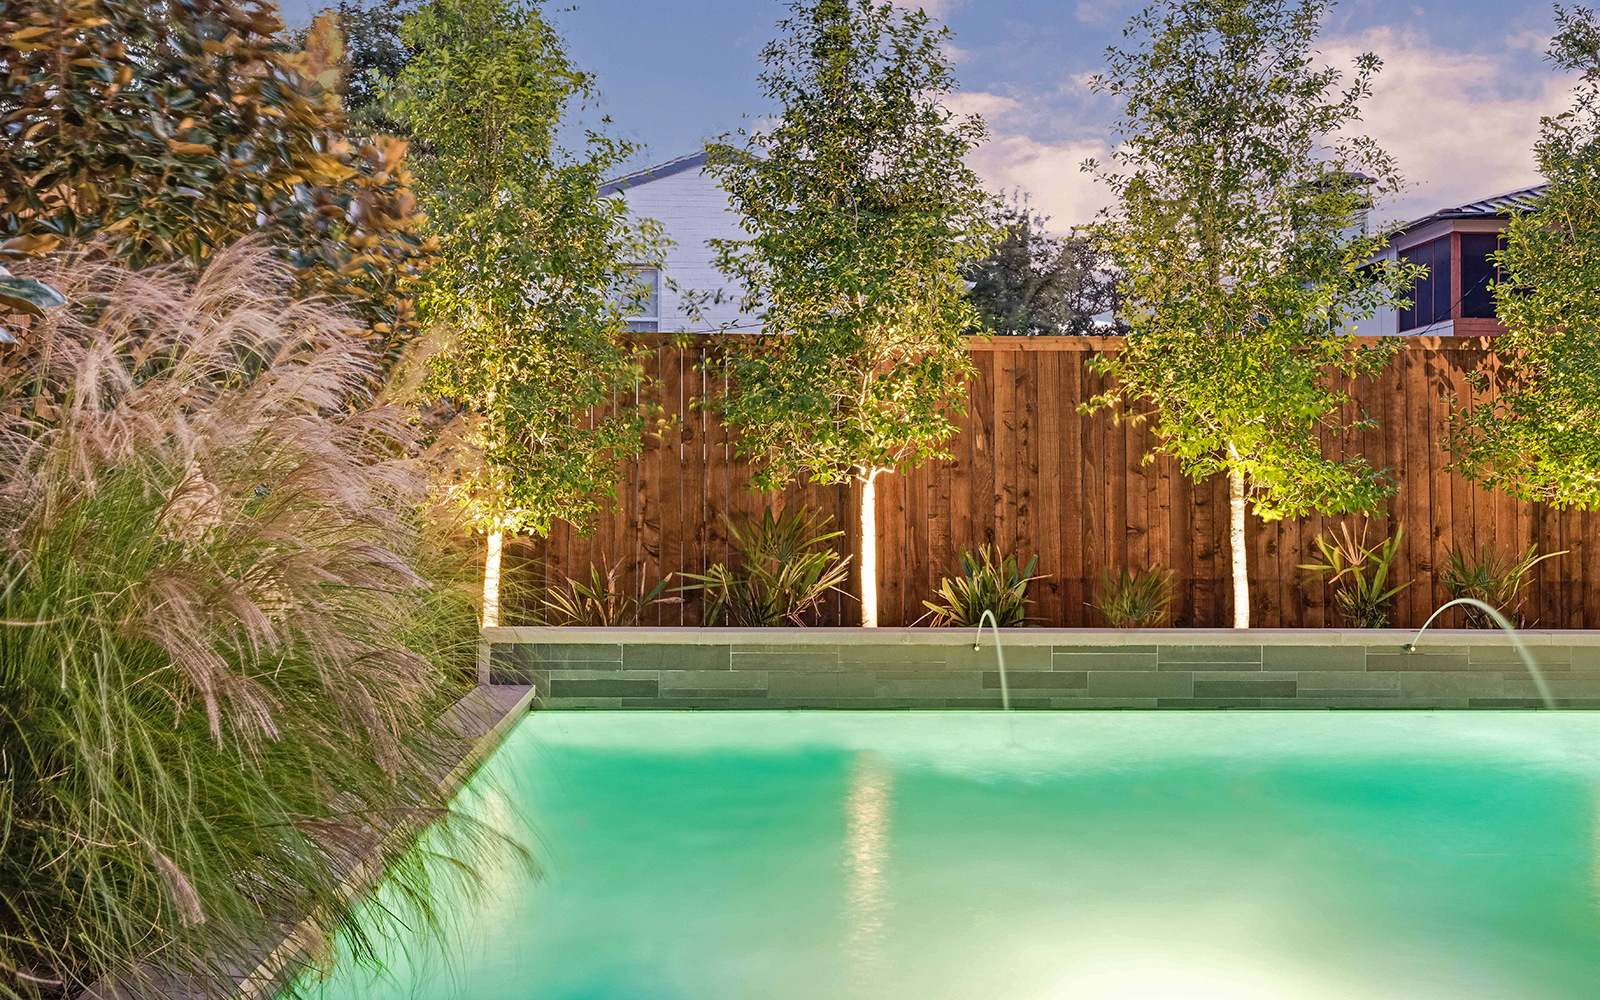 sunnyland-modern-pool-terrace-planting-night.jpg